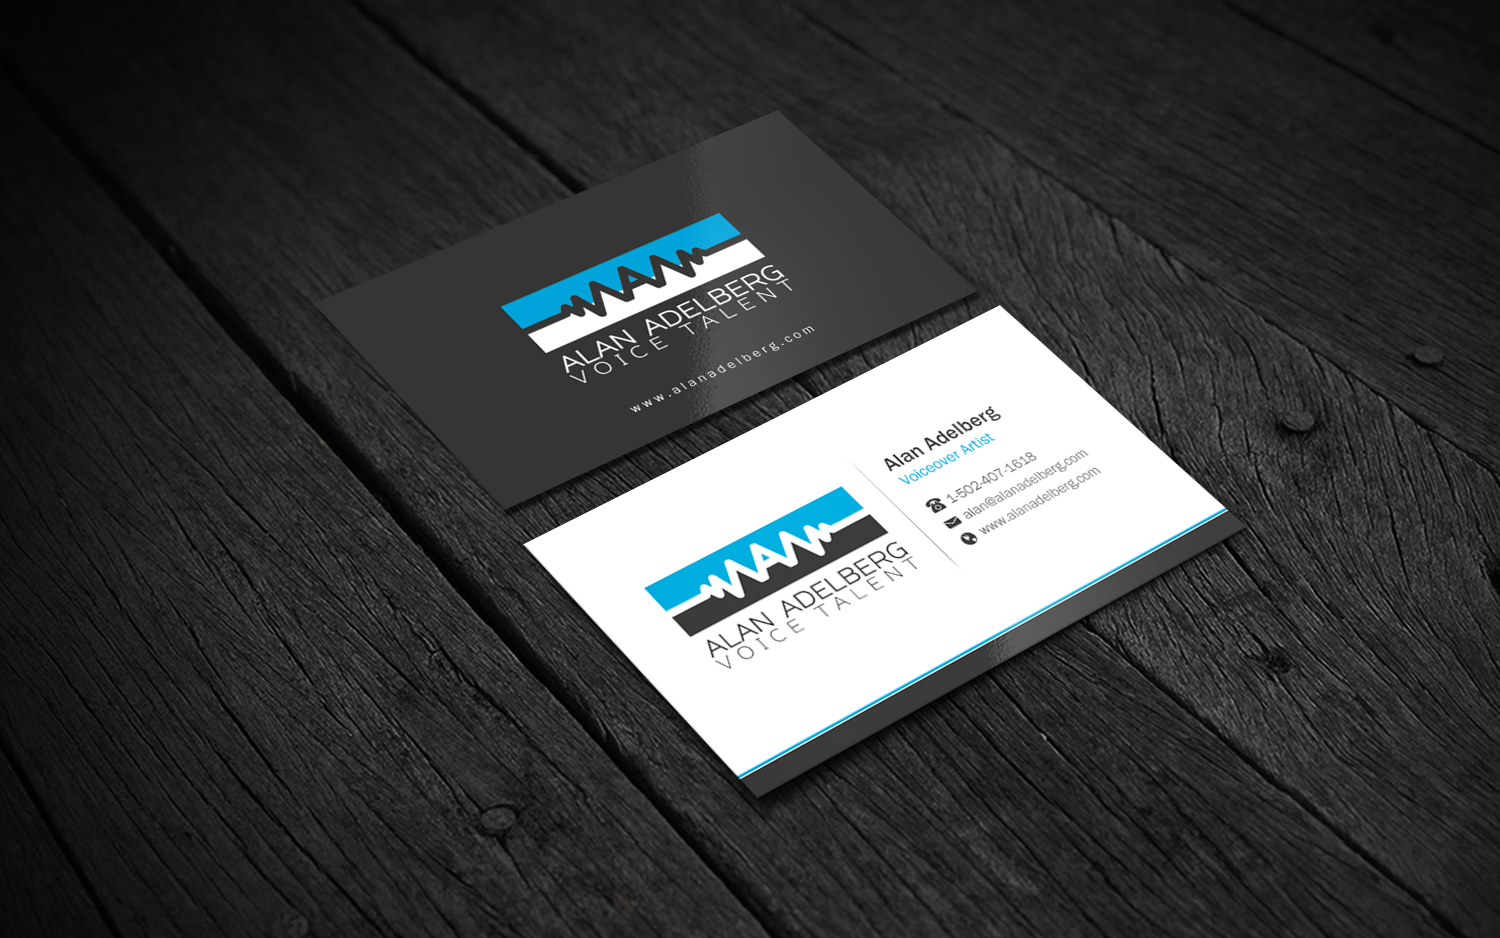 Elegant playful business business card design for a company by business card design by brand aid for this project design 7473337 colourmoves